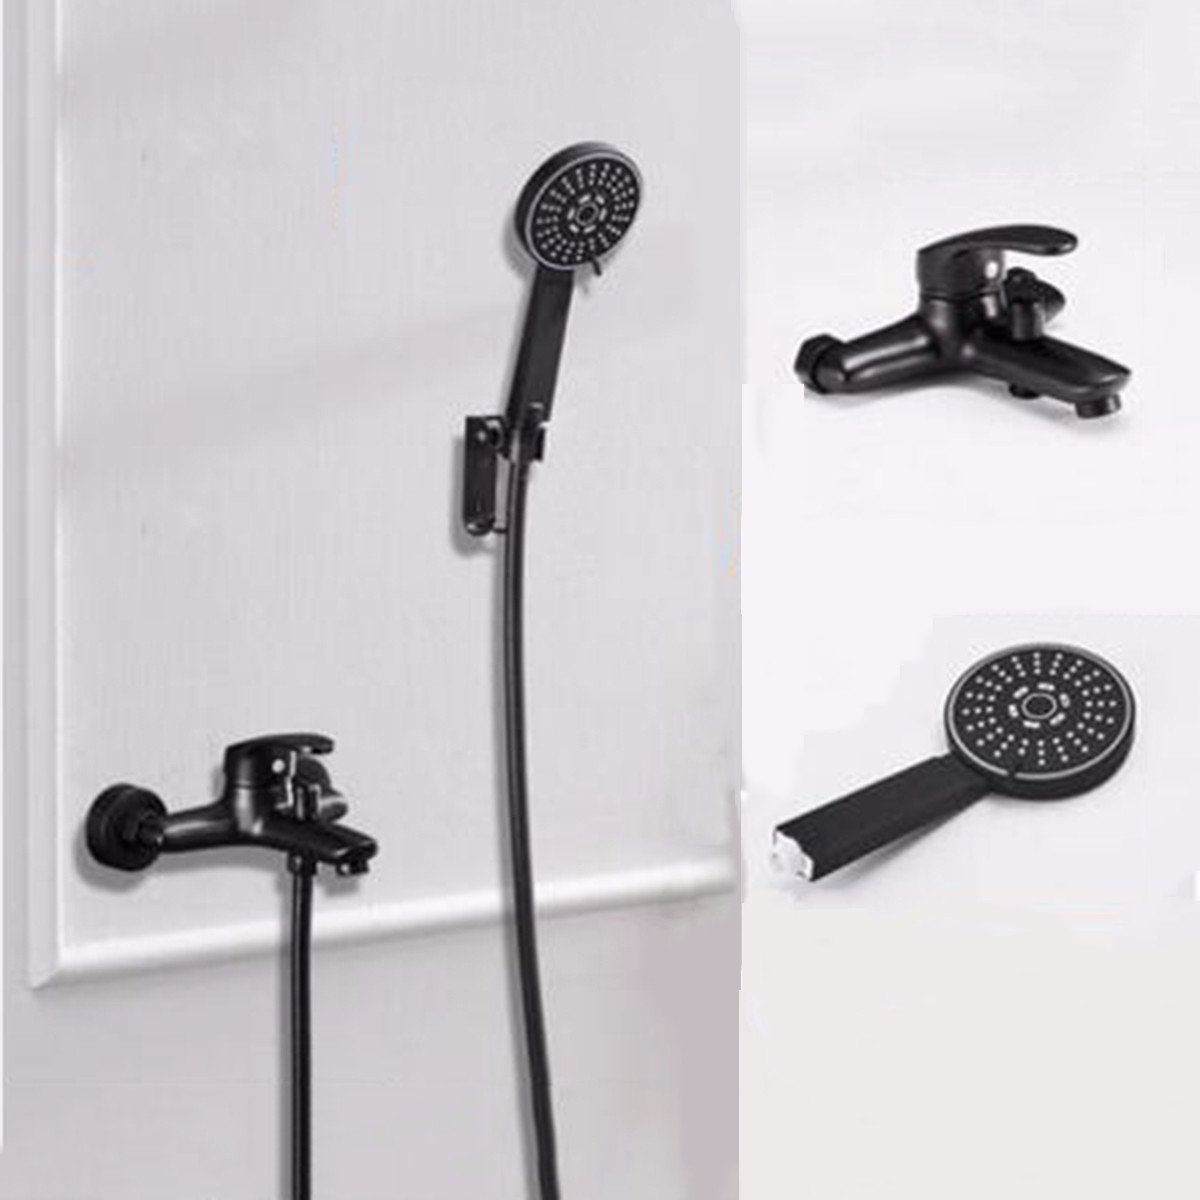 D CJSHV European Black Hot And Cold Bath Shower Faucet Bathroom Shower Set Into The Wall At The Soft Fixed redation Adjustment Of Water,A